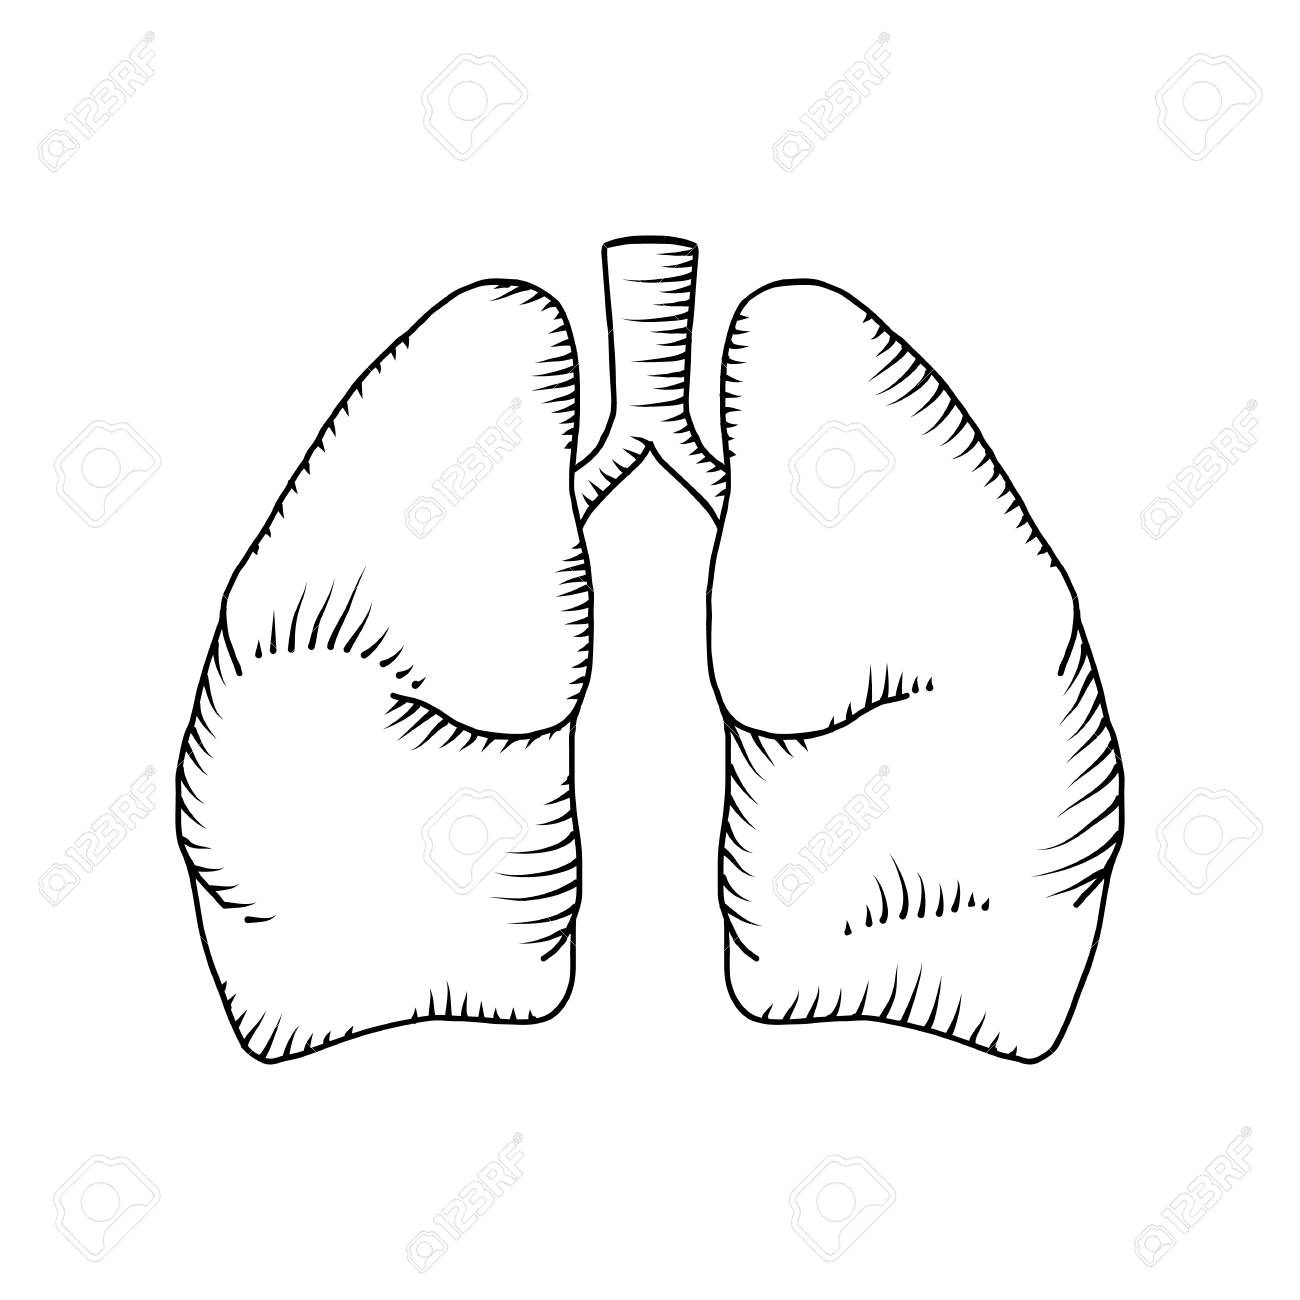 1300x1300 Lung Vector Detailed Illustration. Medical Background Royalty Free